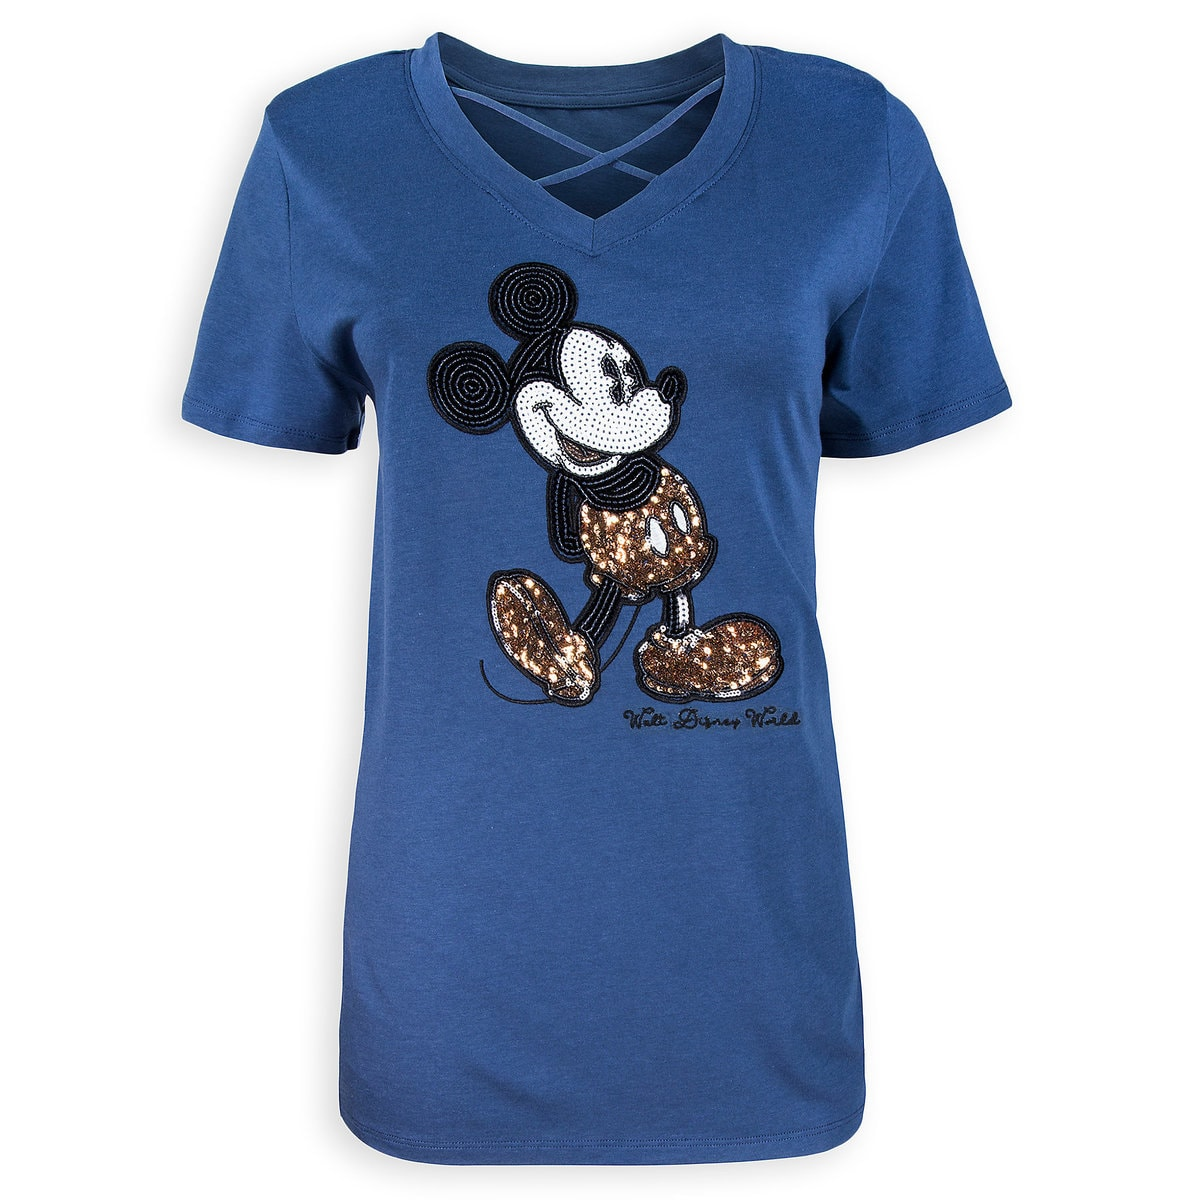 462376edb848cb Product Image of Mickey Mouse Sequined Fashion T-Shirt for Women - Walt  Disney World